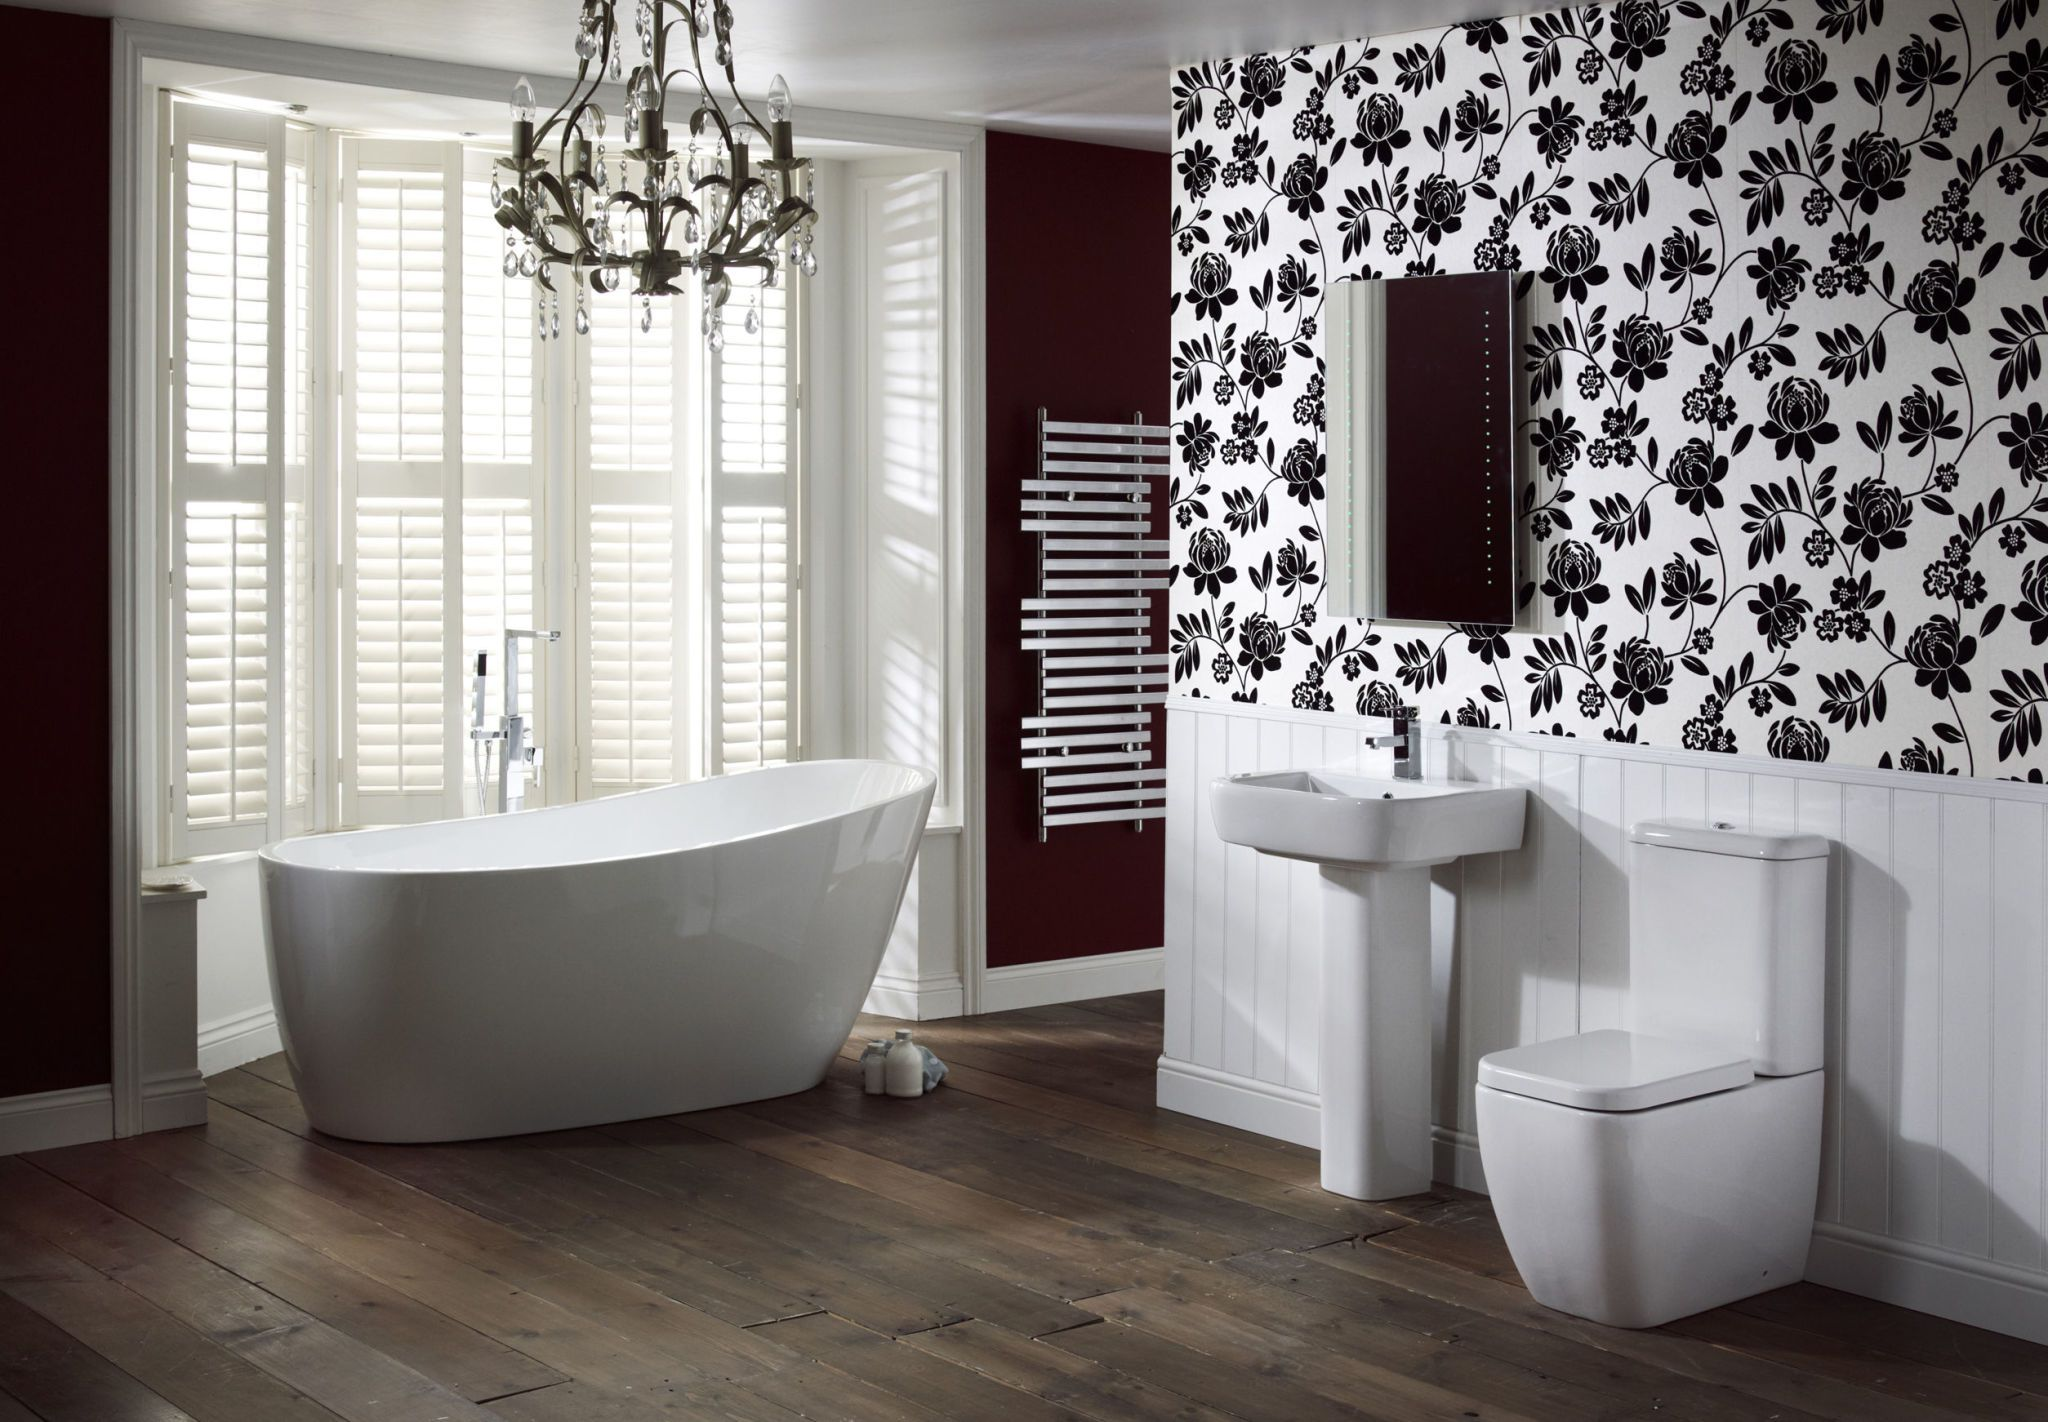 Adella Suite from the Contemporary Collection, Frontline Bathrooms